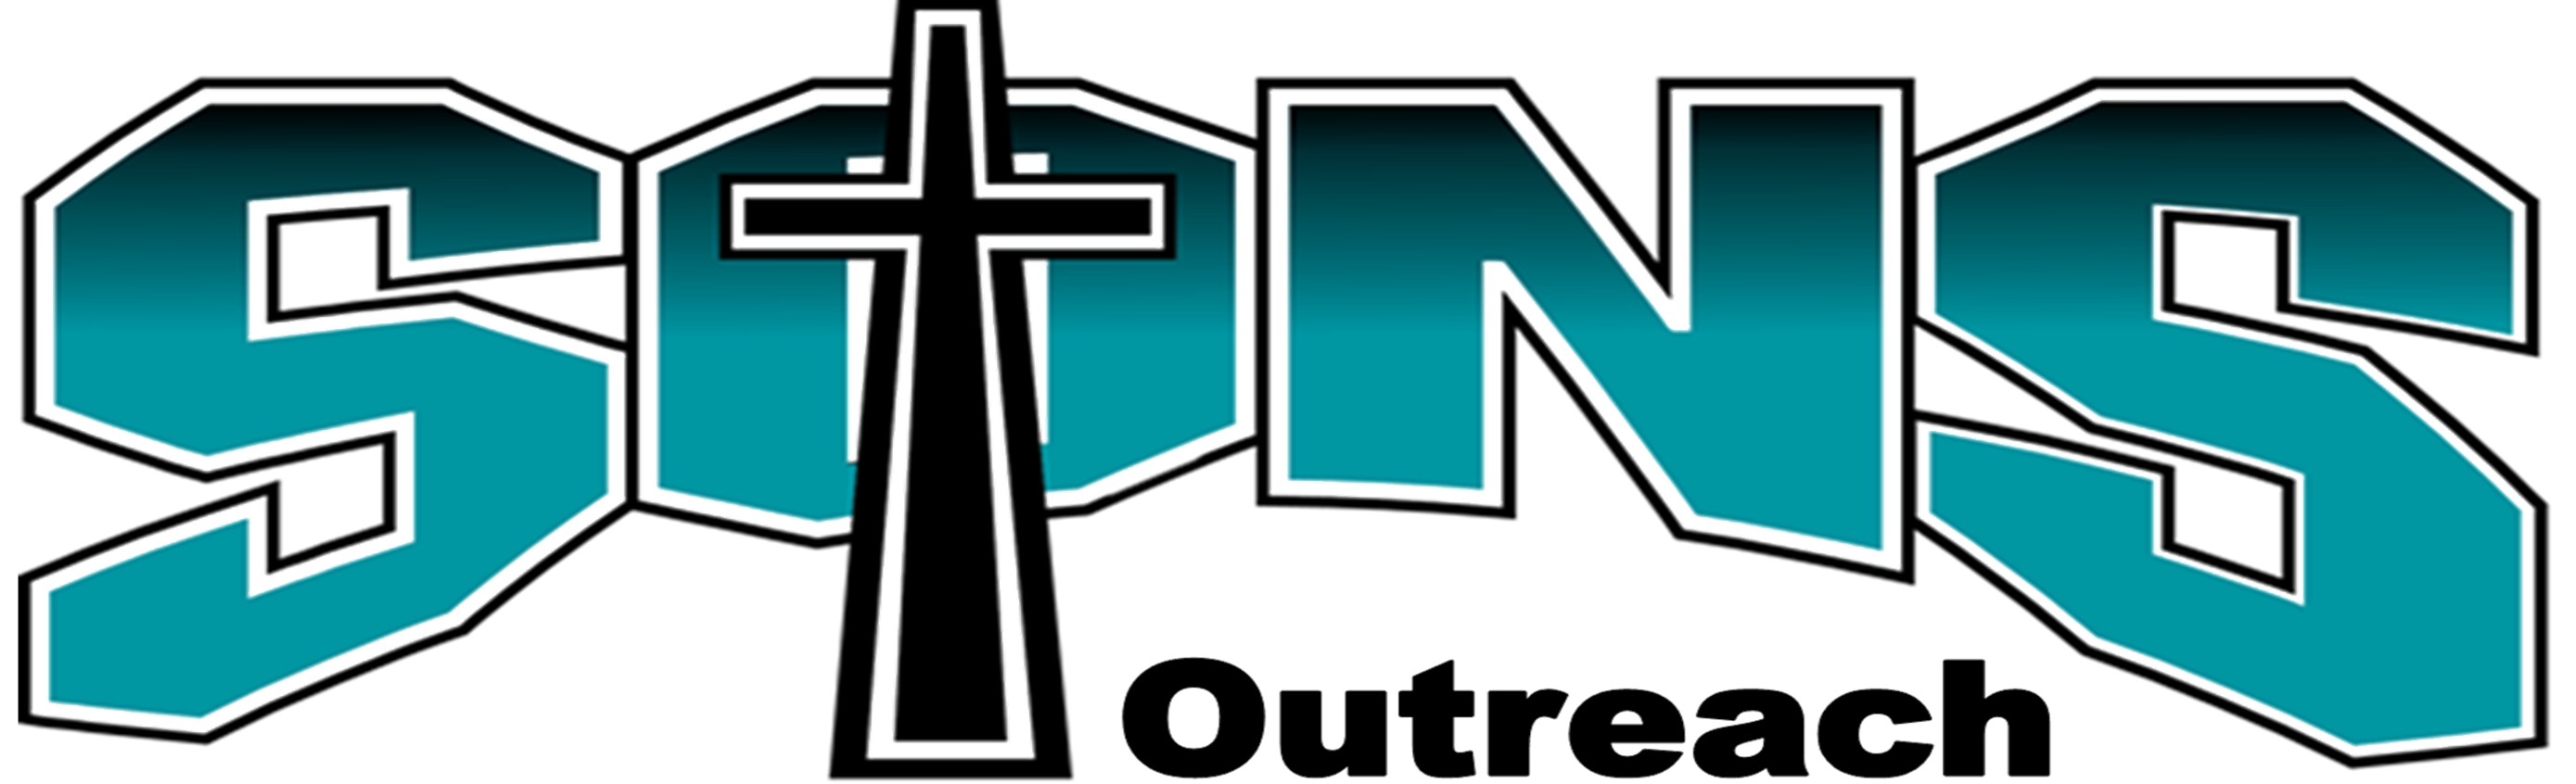 SONS Outreach is a faith-based nonprofit organization committed to the social development, academic excellence, and spiritual growth of St. Clair County's at-risk urban youth through purposeful relationships and structured programming.